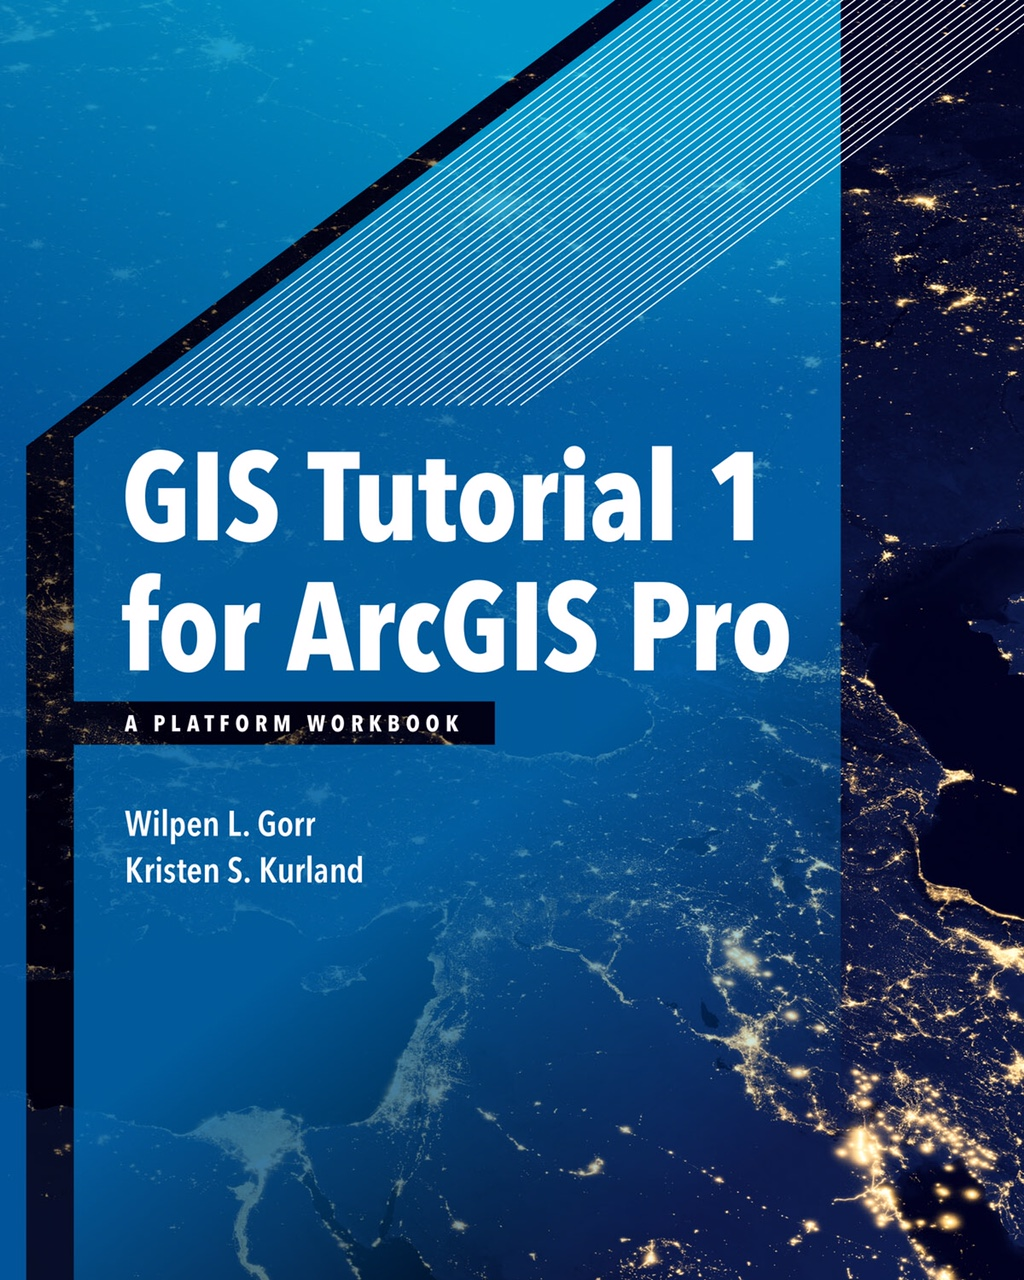 Esri publishes a textbook on how to use ArcGIS Pro